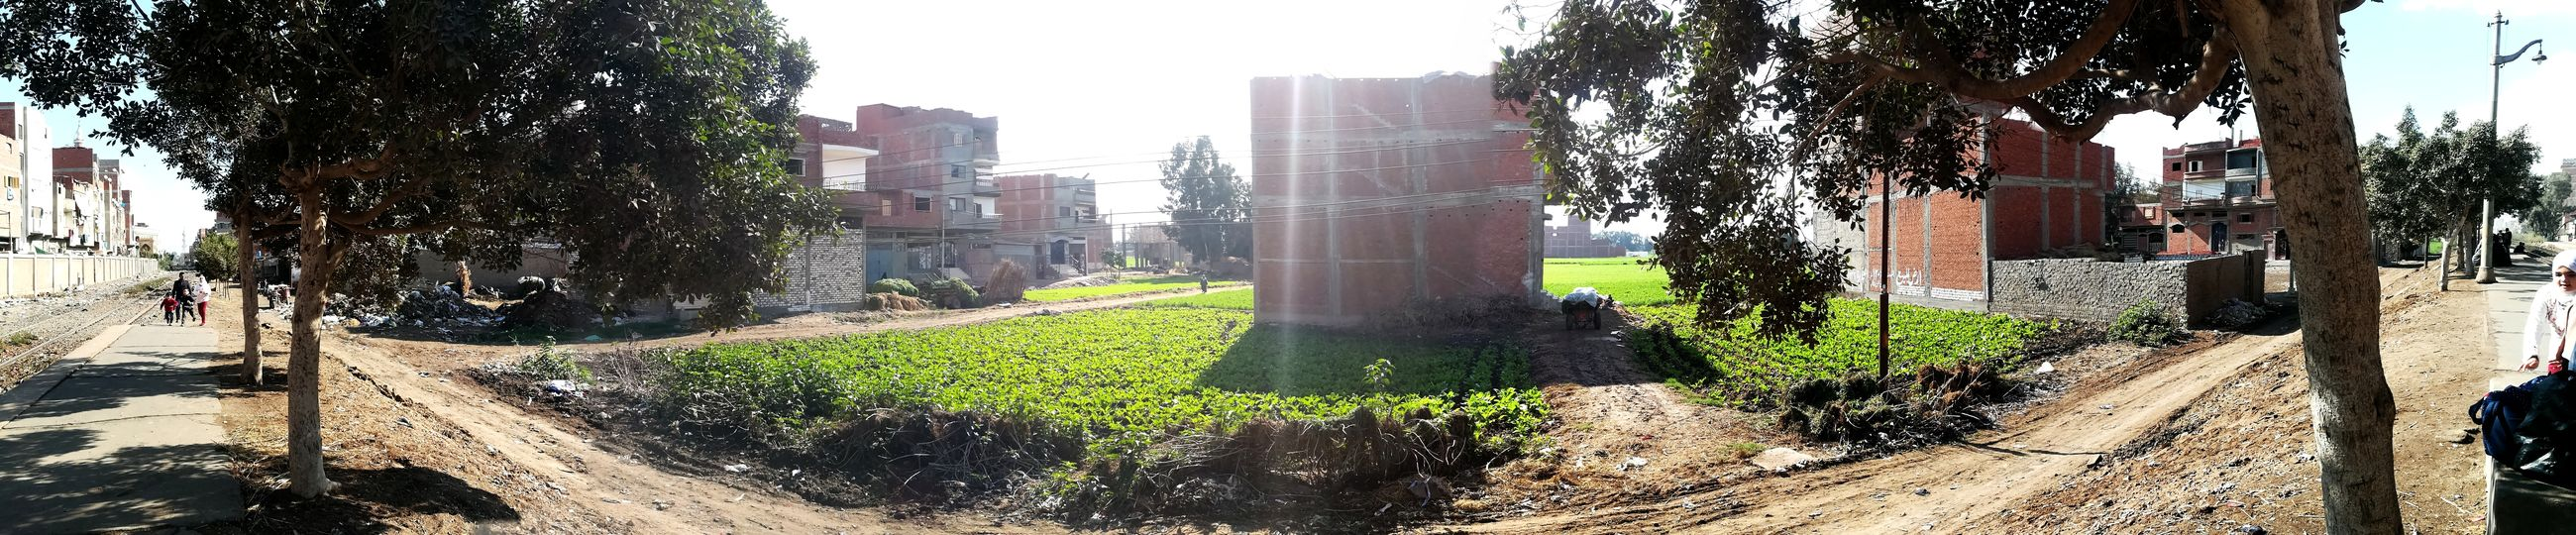 panorama ❤💜 village ''''' nature ' Village EyeEmNewHere Sun Green Growth Ground Outdoors Sunlight Day Tree Shadow No People Built Structure Architecture Nature Sky